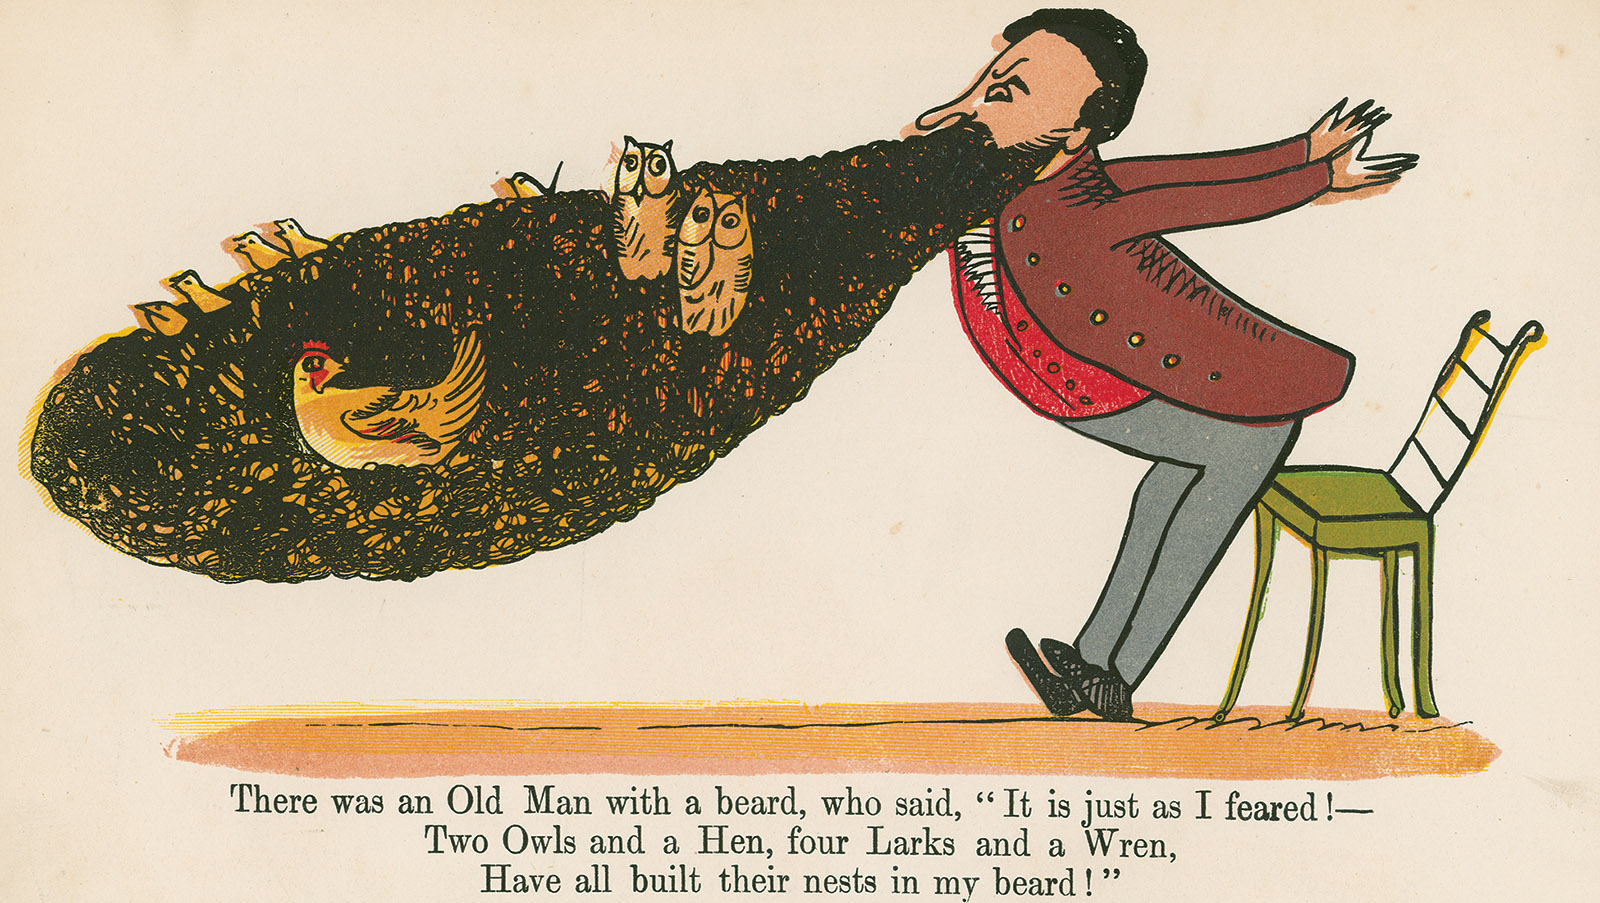 A colored lithograph from A Book of Nonsense, by Edward Lear, circa 1875